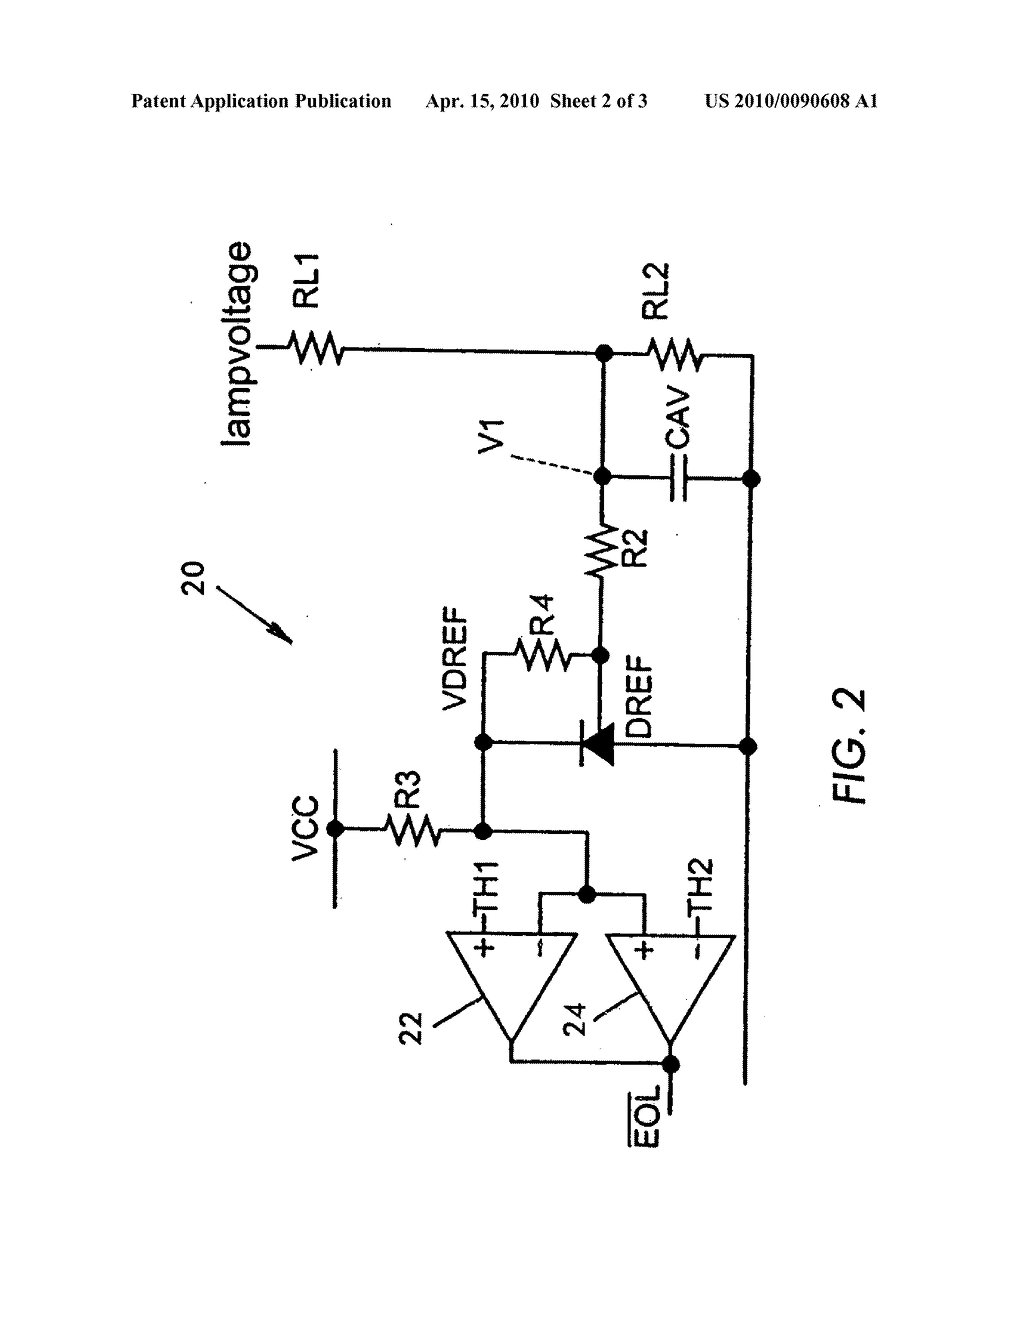 End Of Lamp Life Detection Circuit Diagram Schematic And Image 03